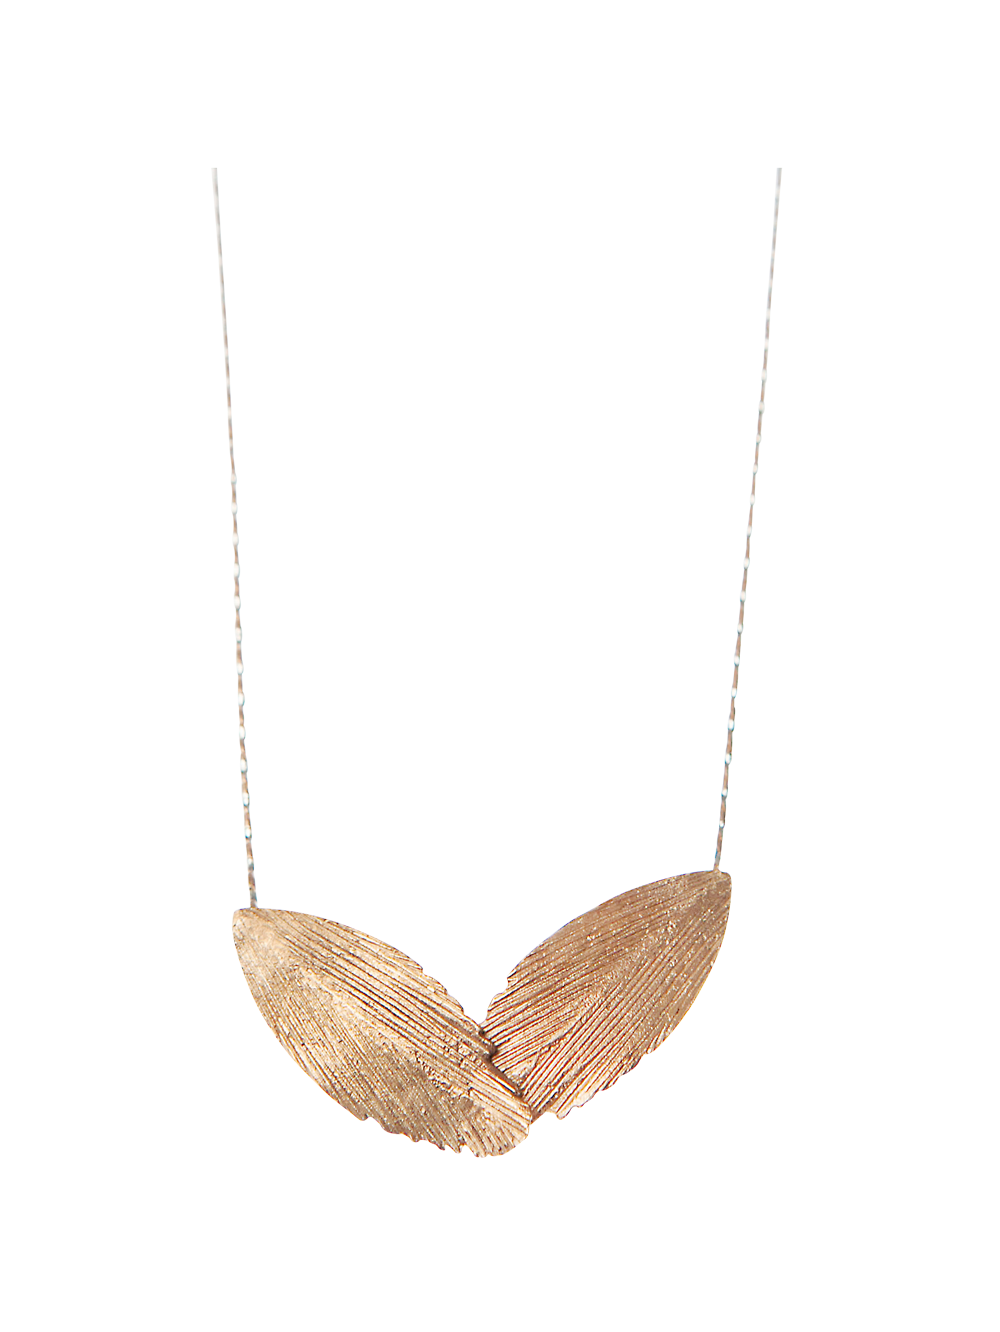 Red Gold Plated 925 Feather Statement Necklace - Ladies Jewellery